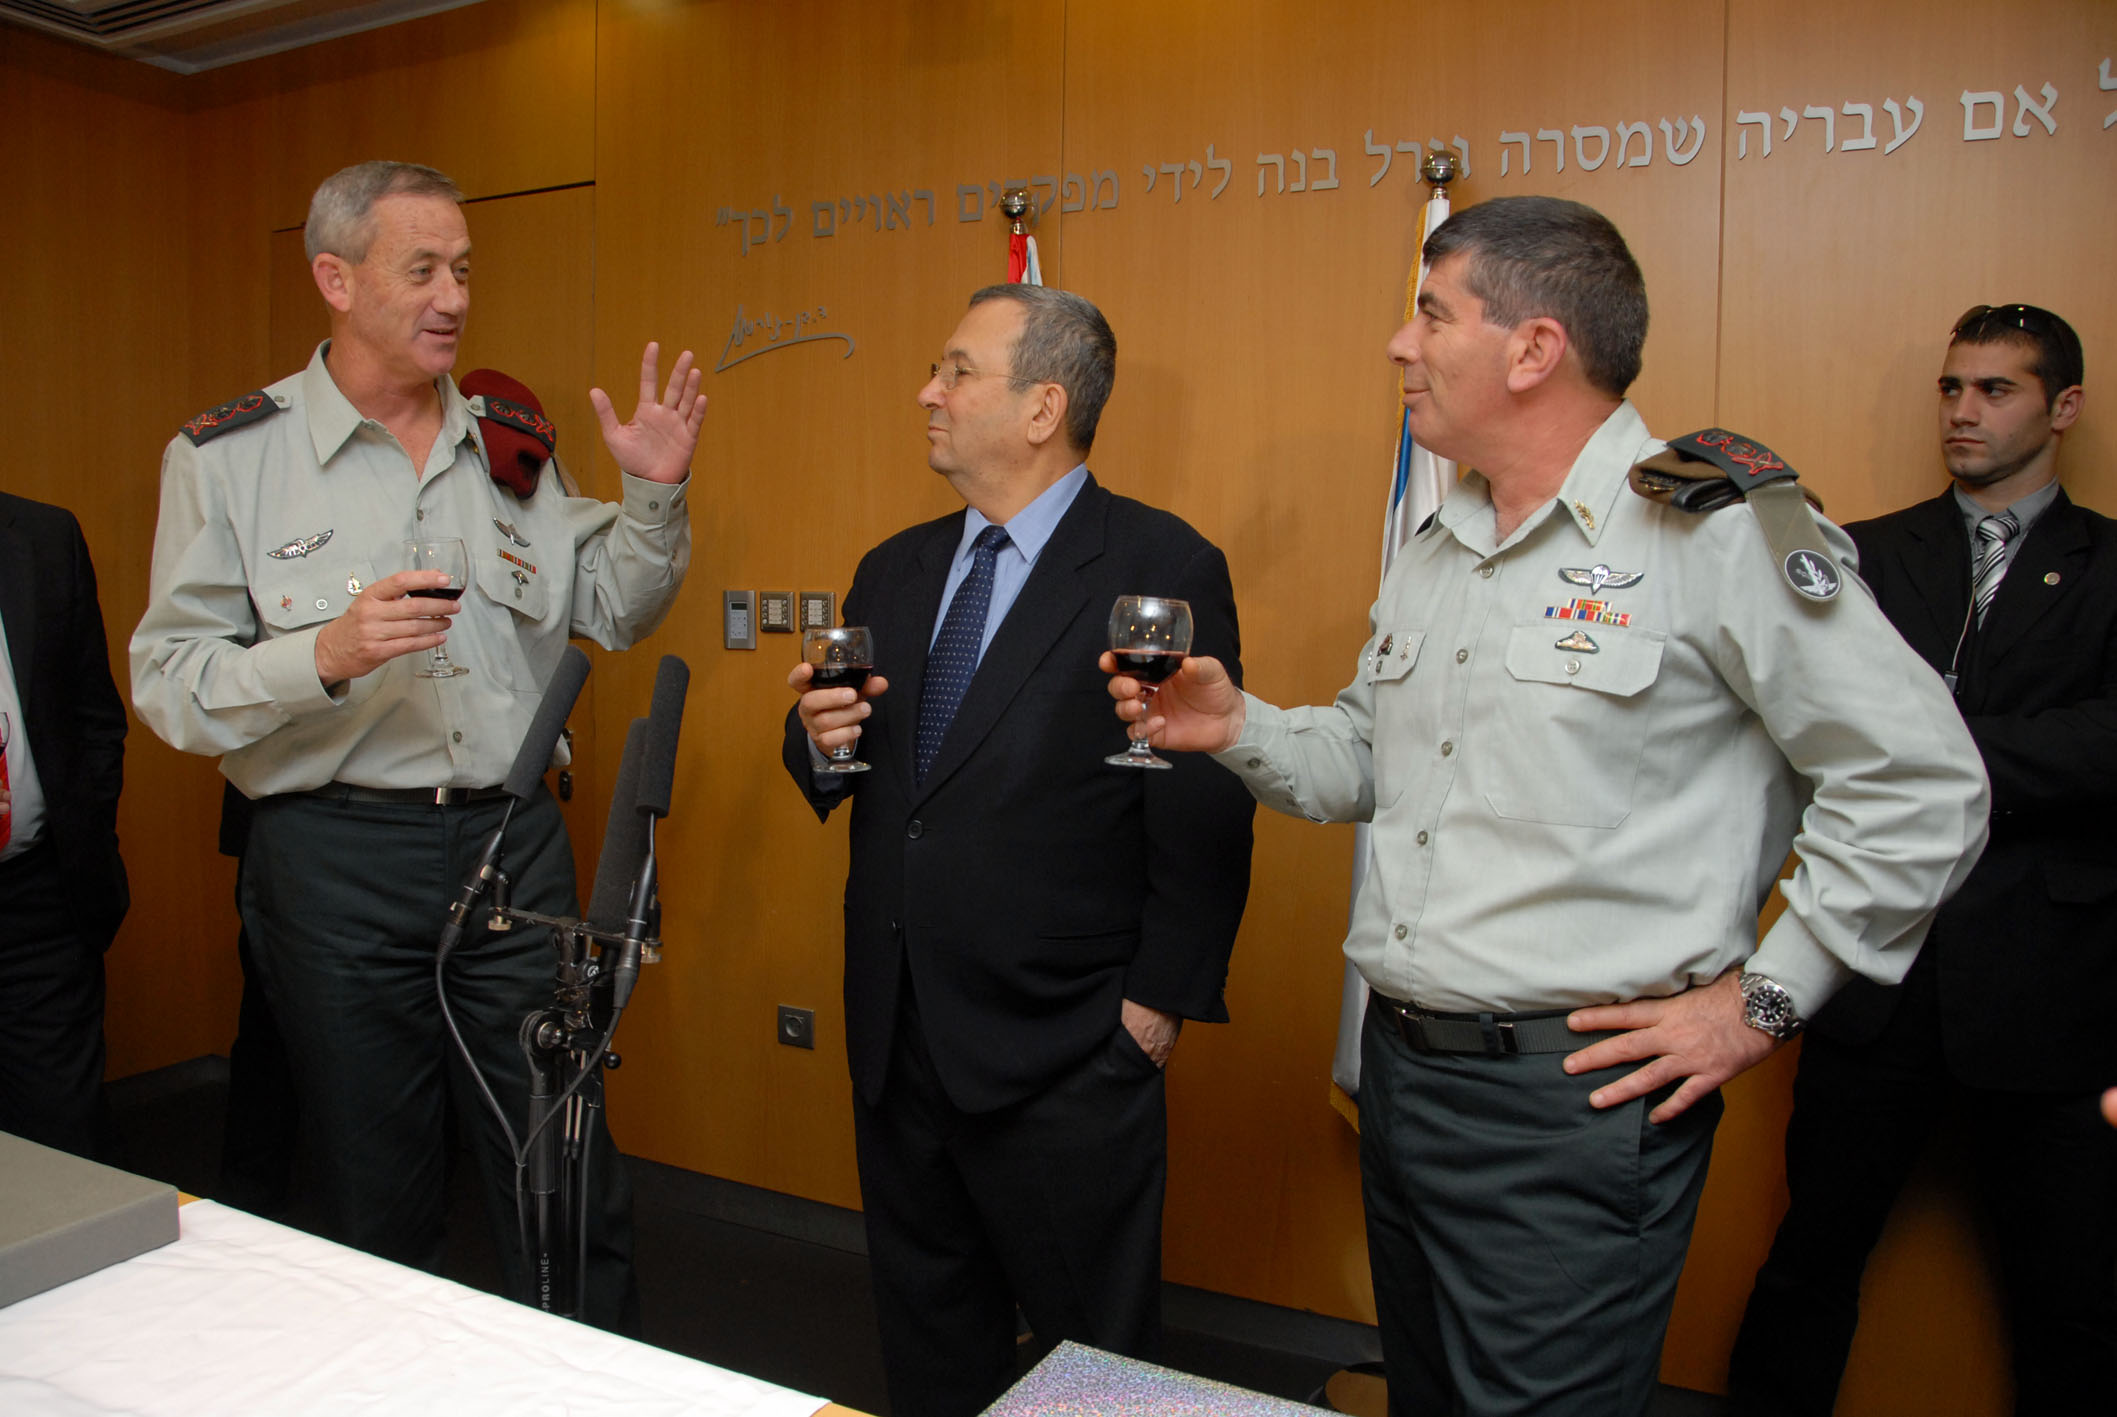 Lieutenant General Gantz, Minister of Defense Ehud Barak and Lieutenant General Gabi Ashkenazi